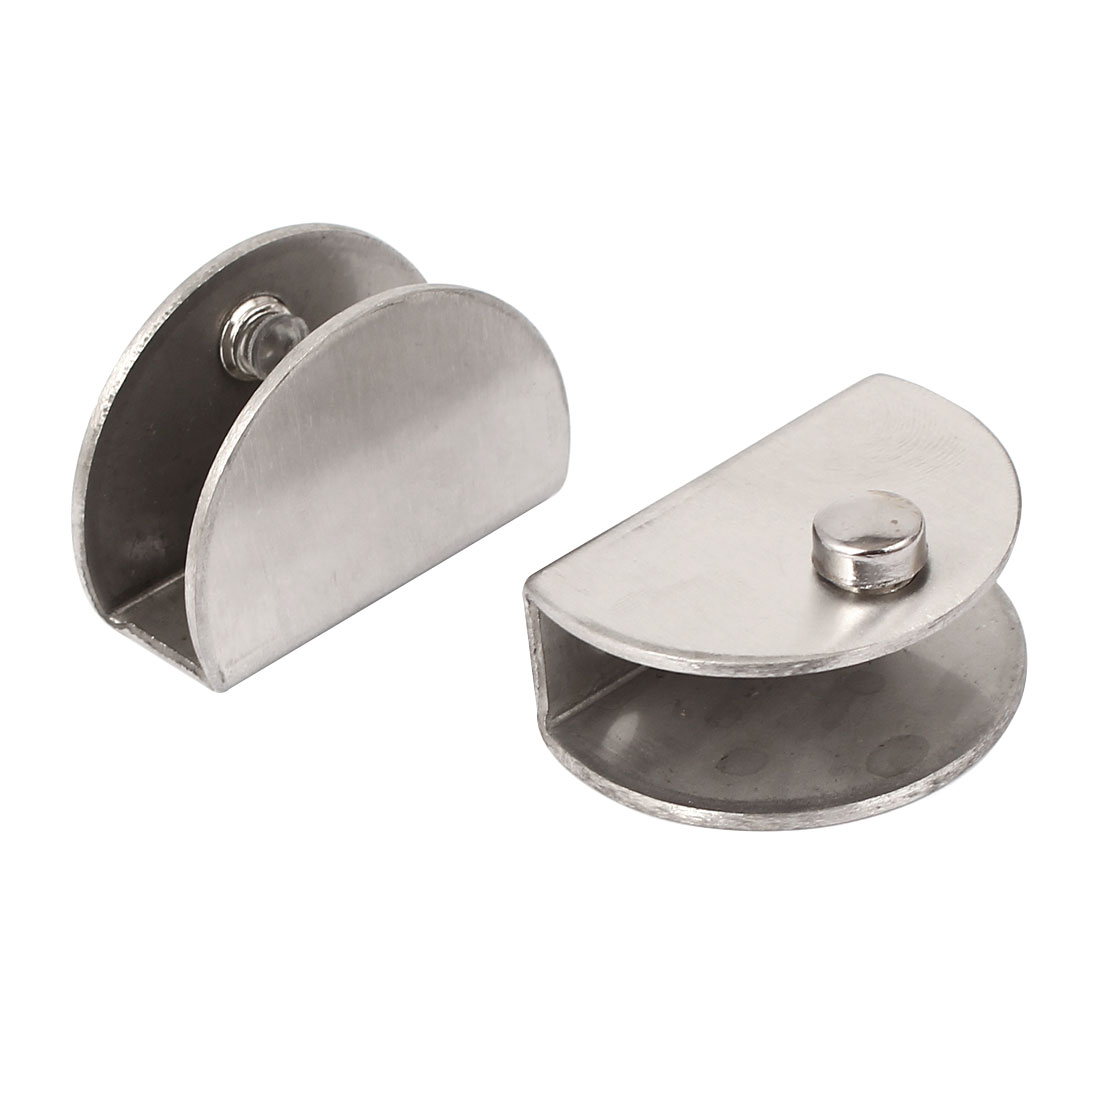 Half Round Shaped Stainless Steel Clip Clamp Holder 2pcs for 10mm Thick Glass